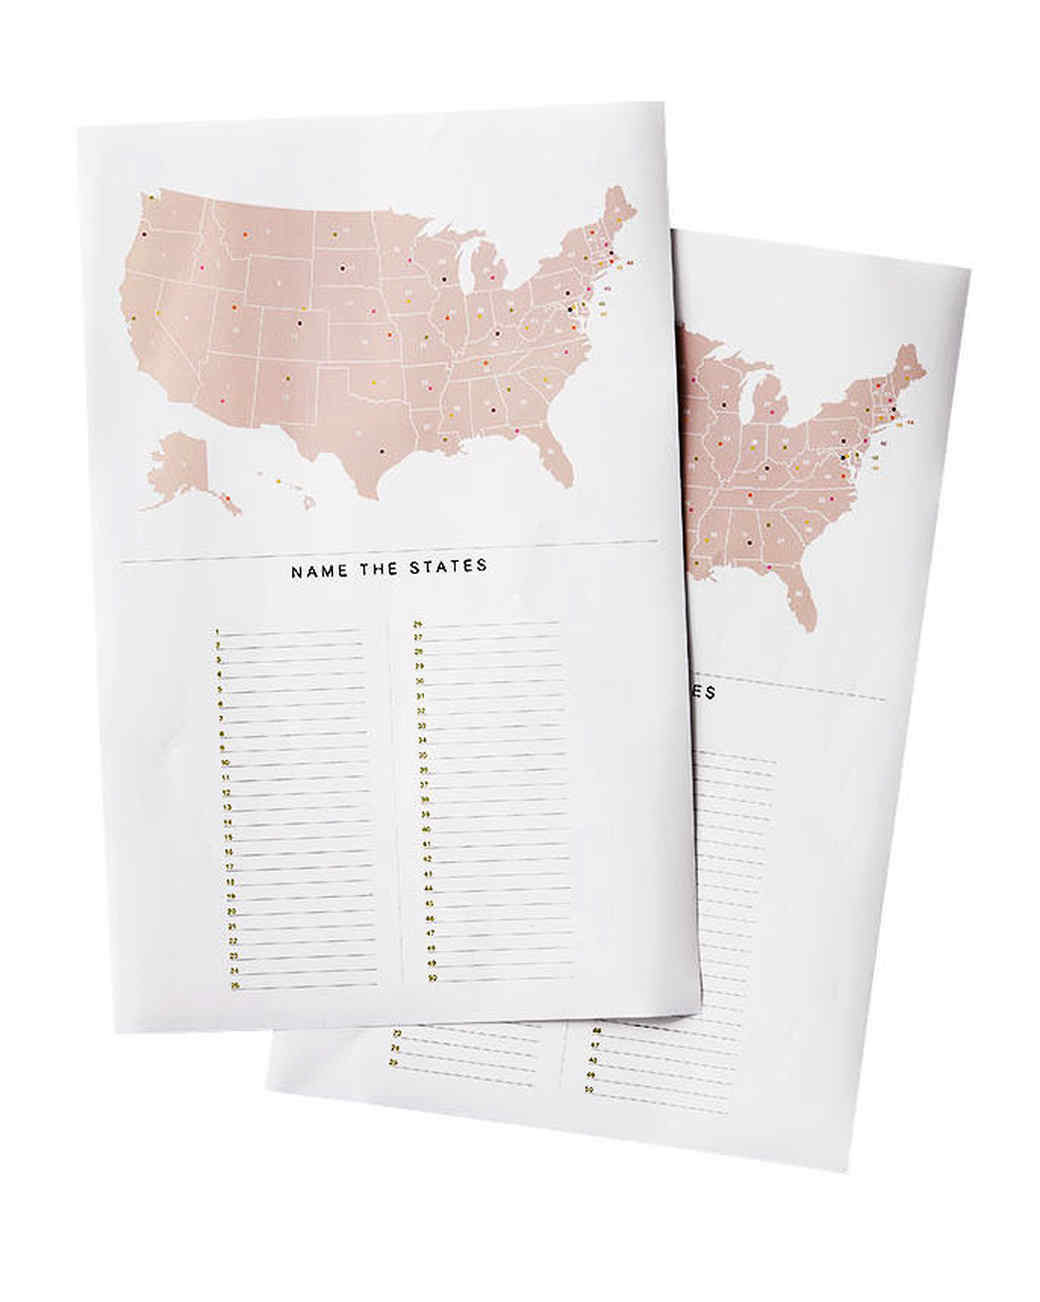 United States Capitals Quiz Printable United States and Capitals Map Trivia Game